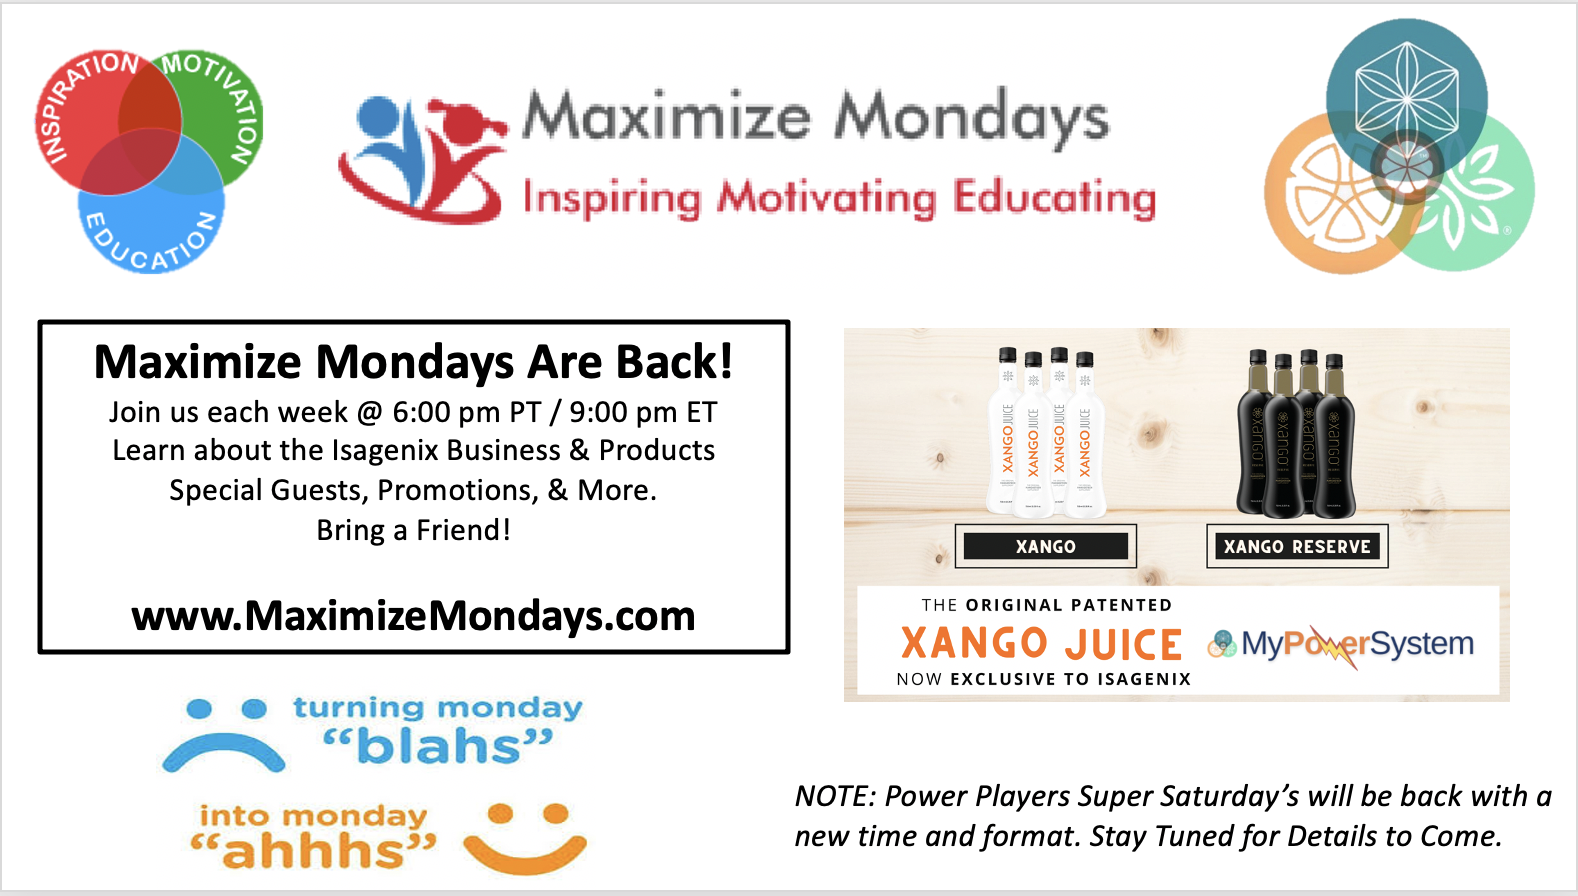 Maximize Monday's Isagenix Business Overview